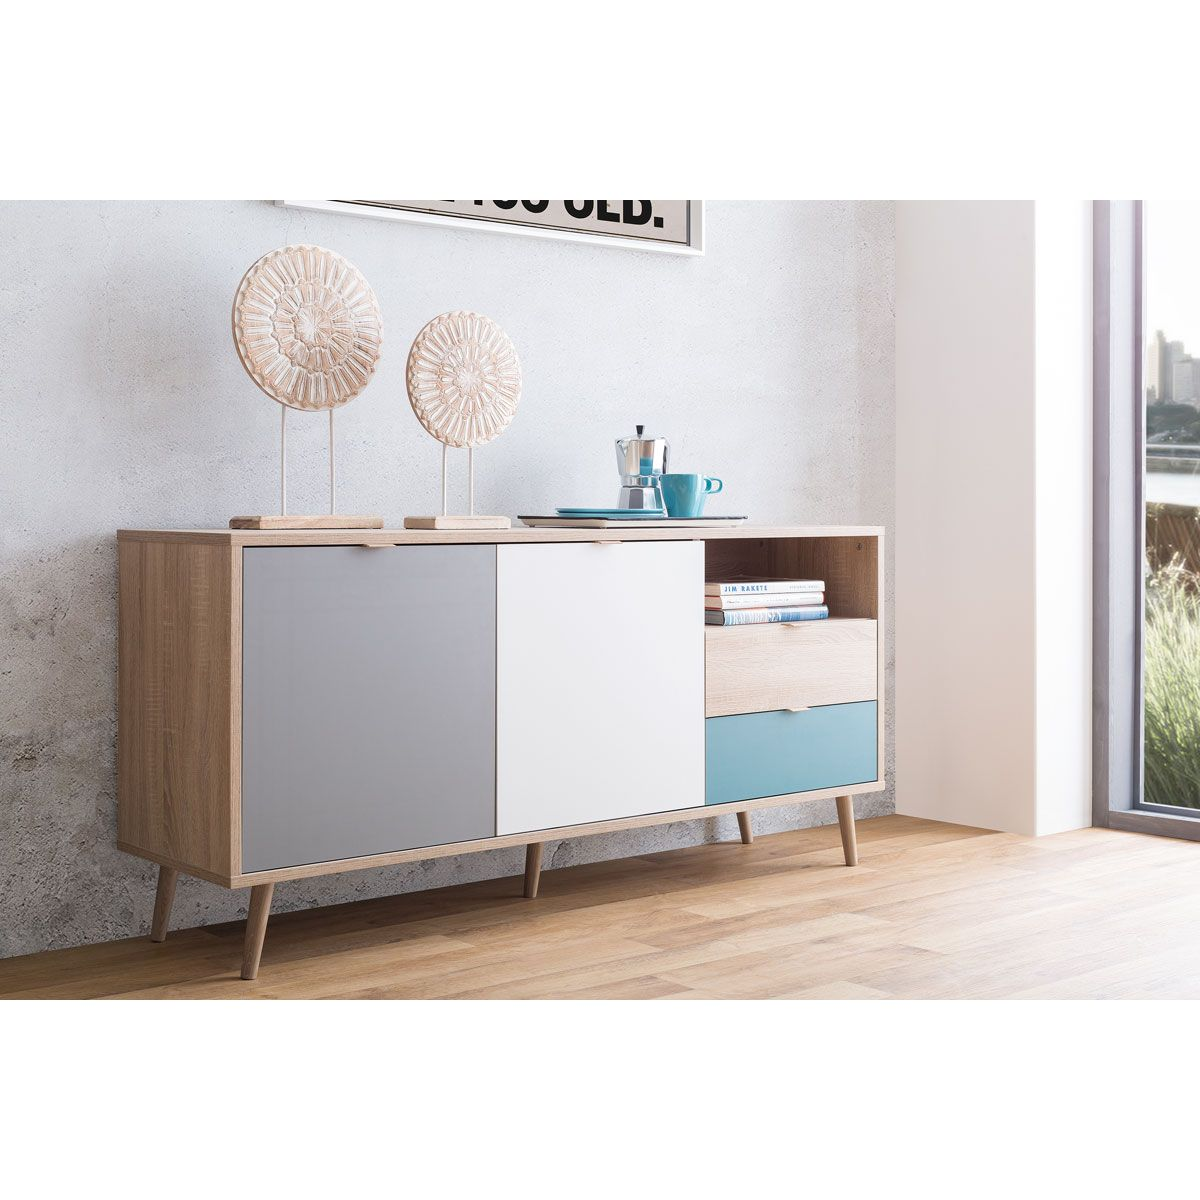 Sideboard Vitrine מזנון קומודה Cuba 51 In 2019 משרד Sideboard Oak Sideboard Low